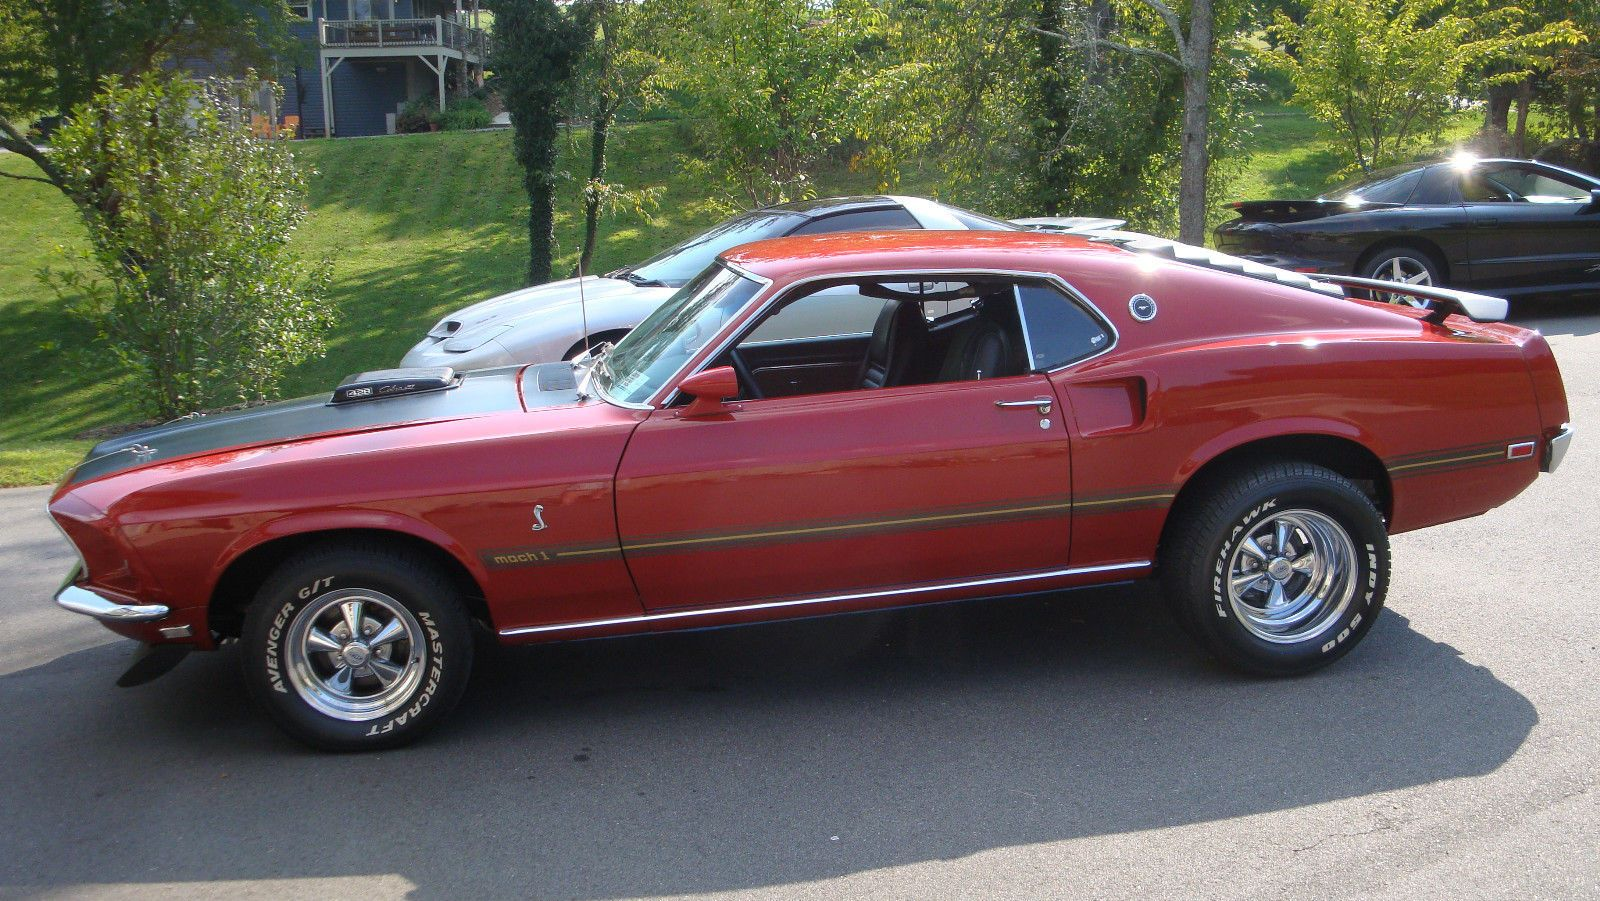 1969 Ford Mustang Mach 1 428 Candy Apple Red 428cj With Images Ford Mustang Muscle Cars Best Muscle Cars